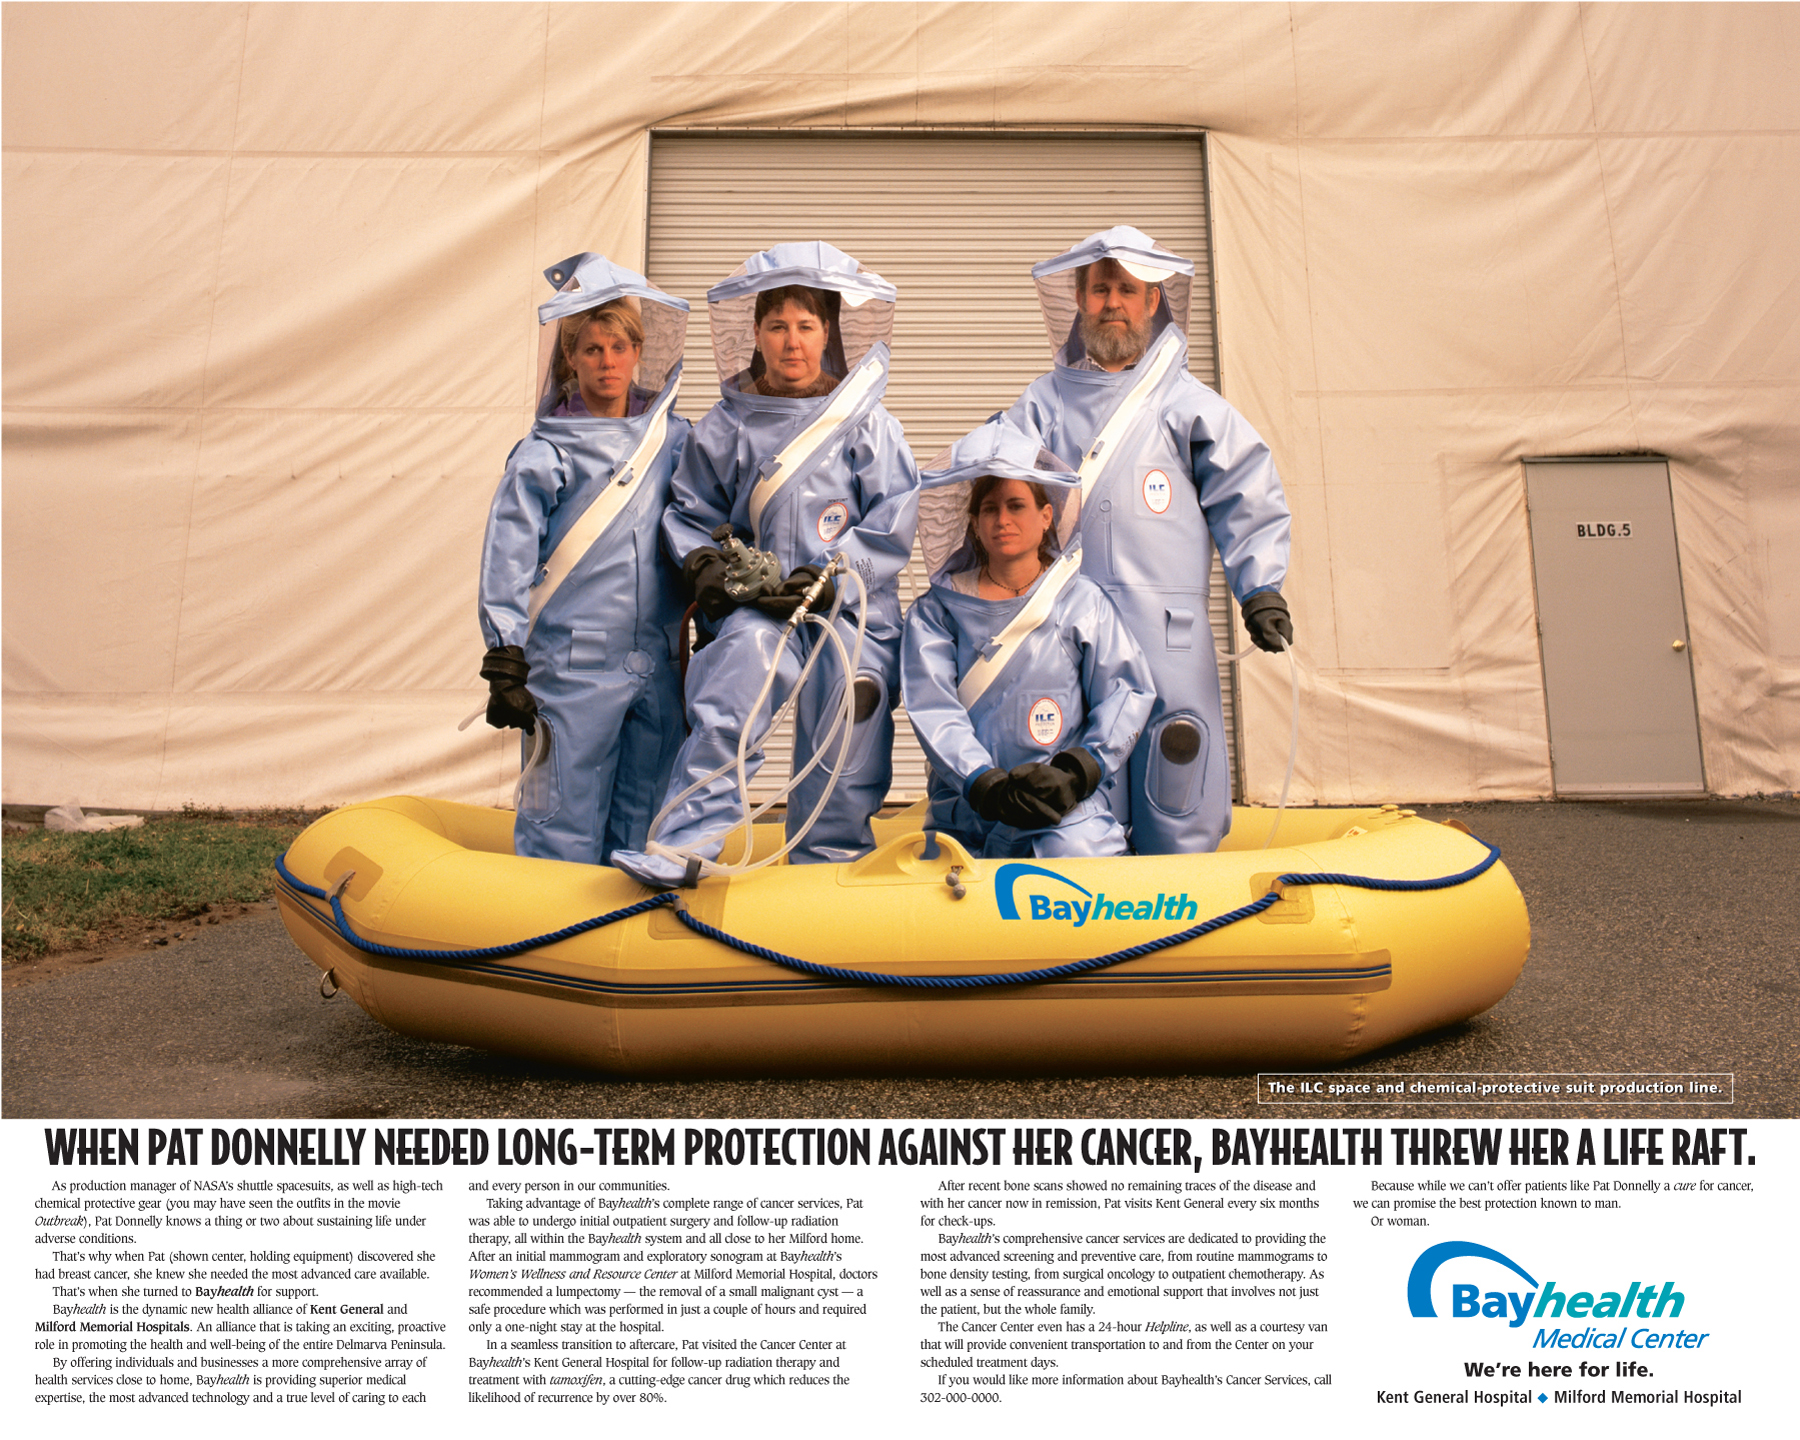 BayHealth-Hazmat Suits